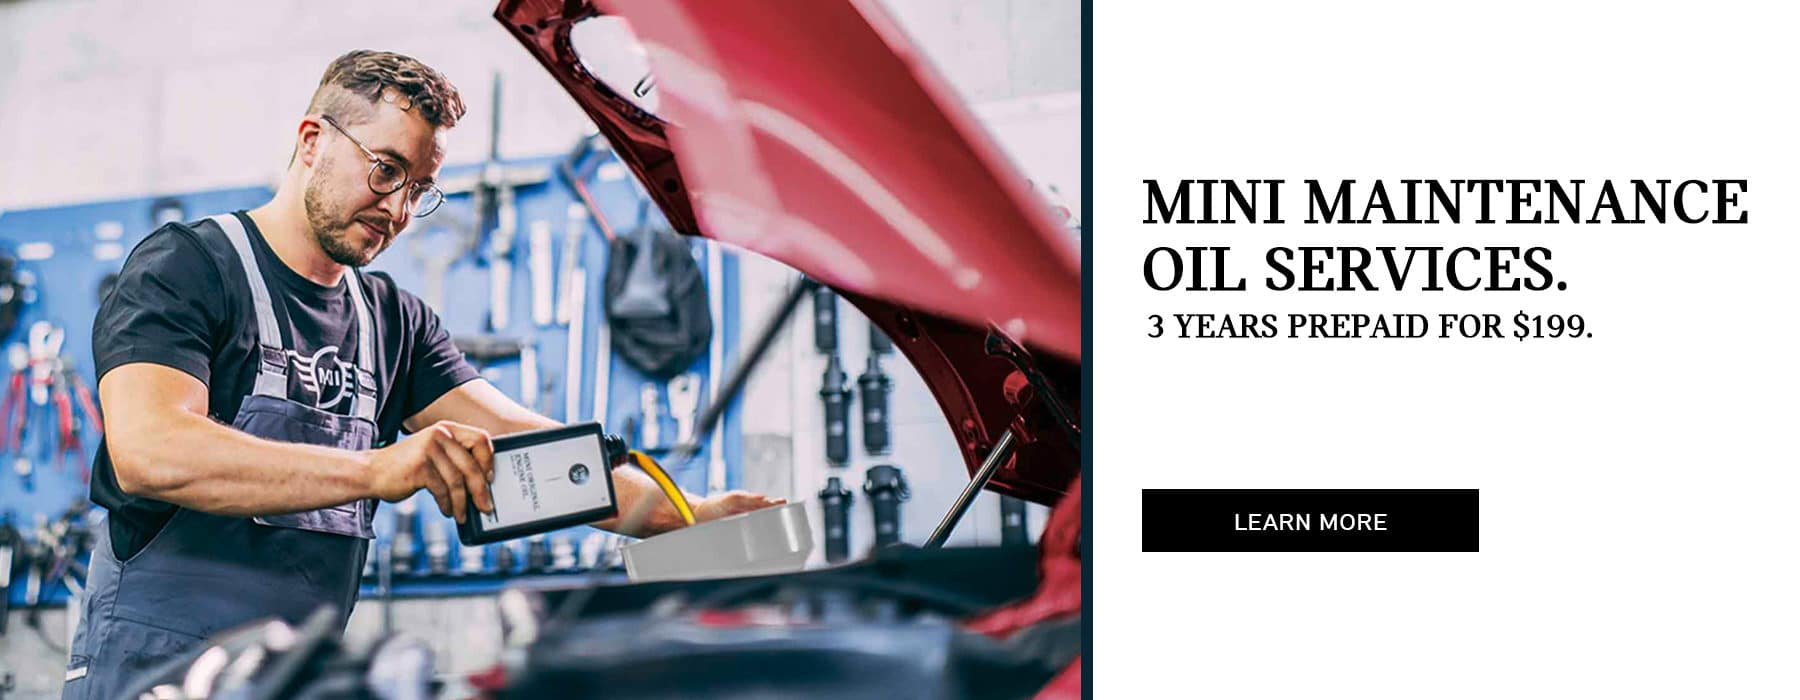 3 years prepaid oil service special